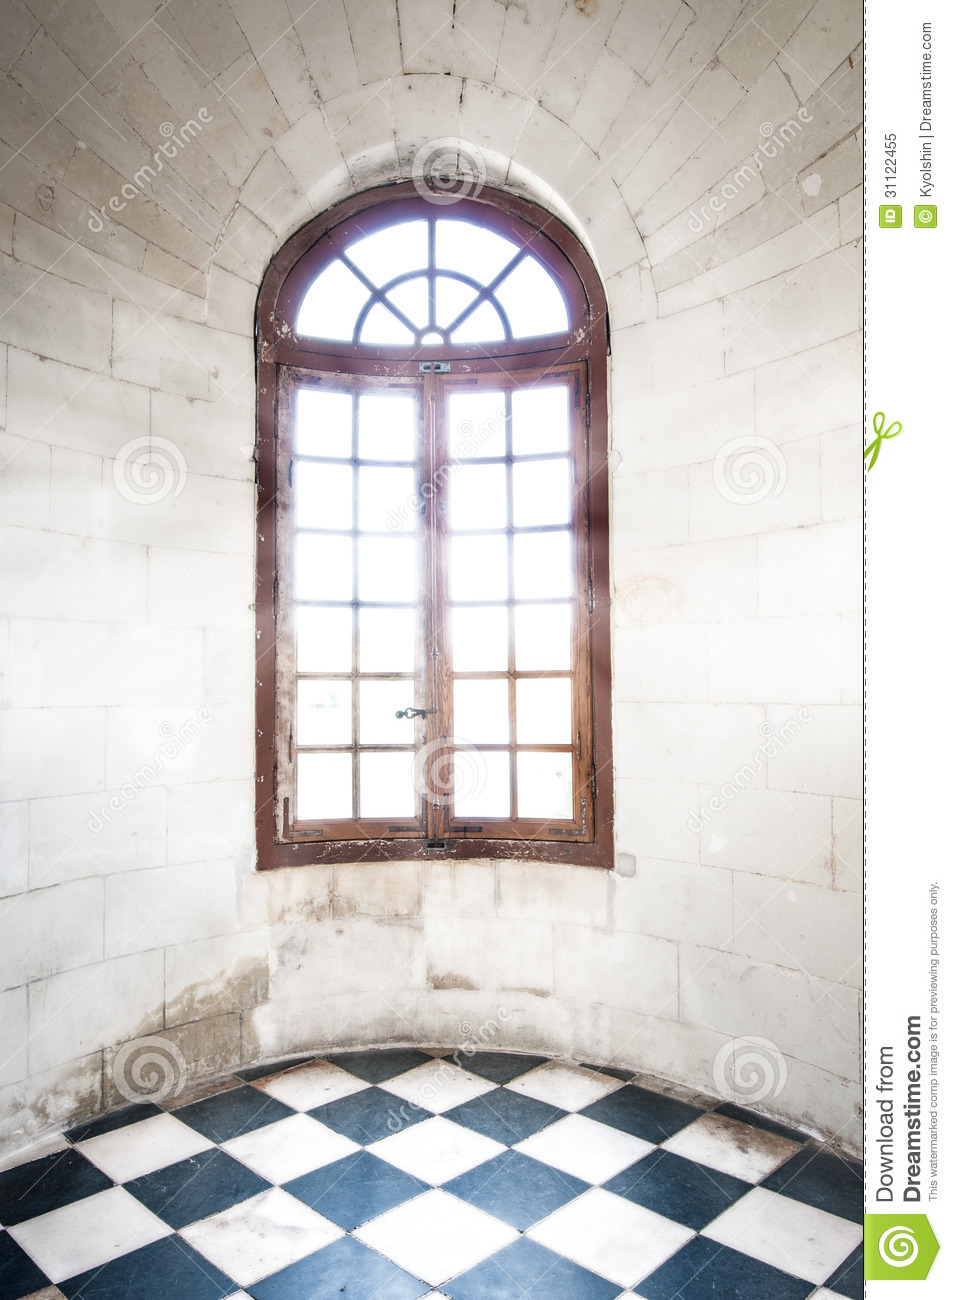 Grungy arched window inside old building stock image for Sunlight windows